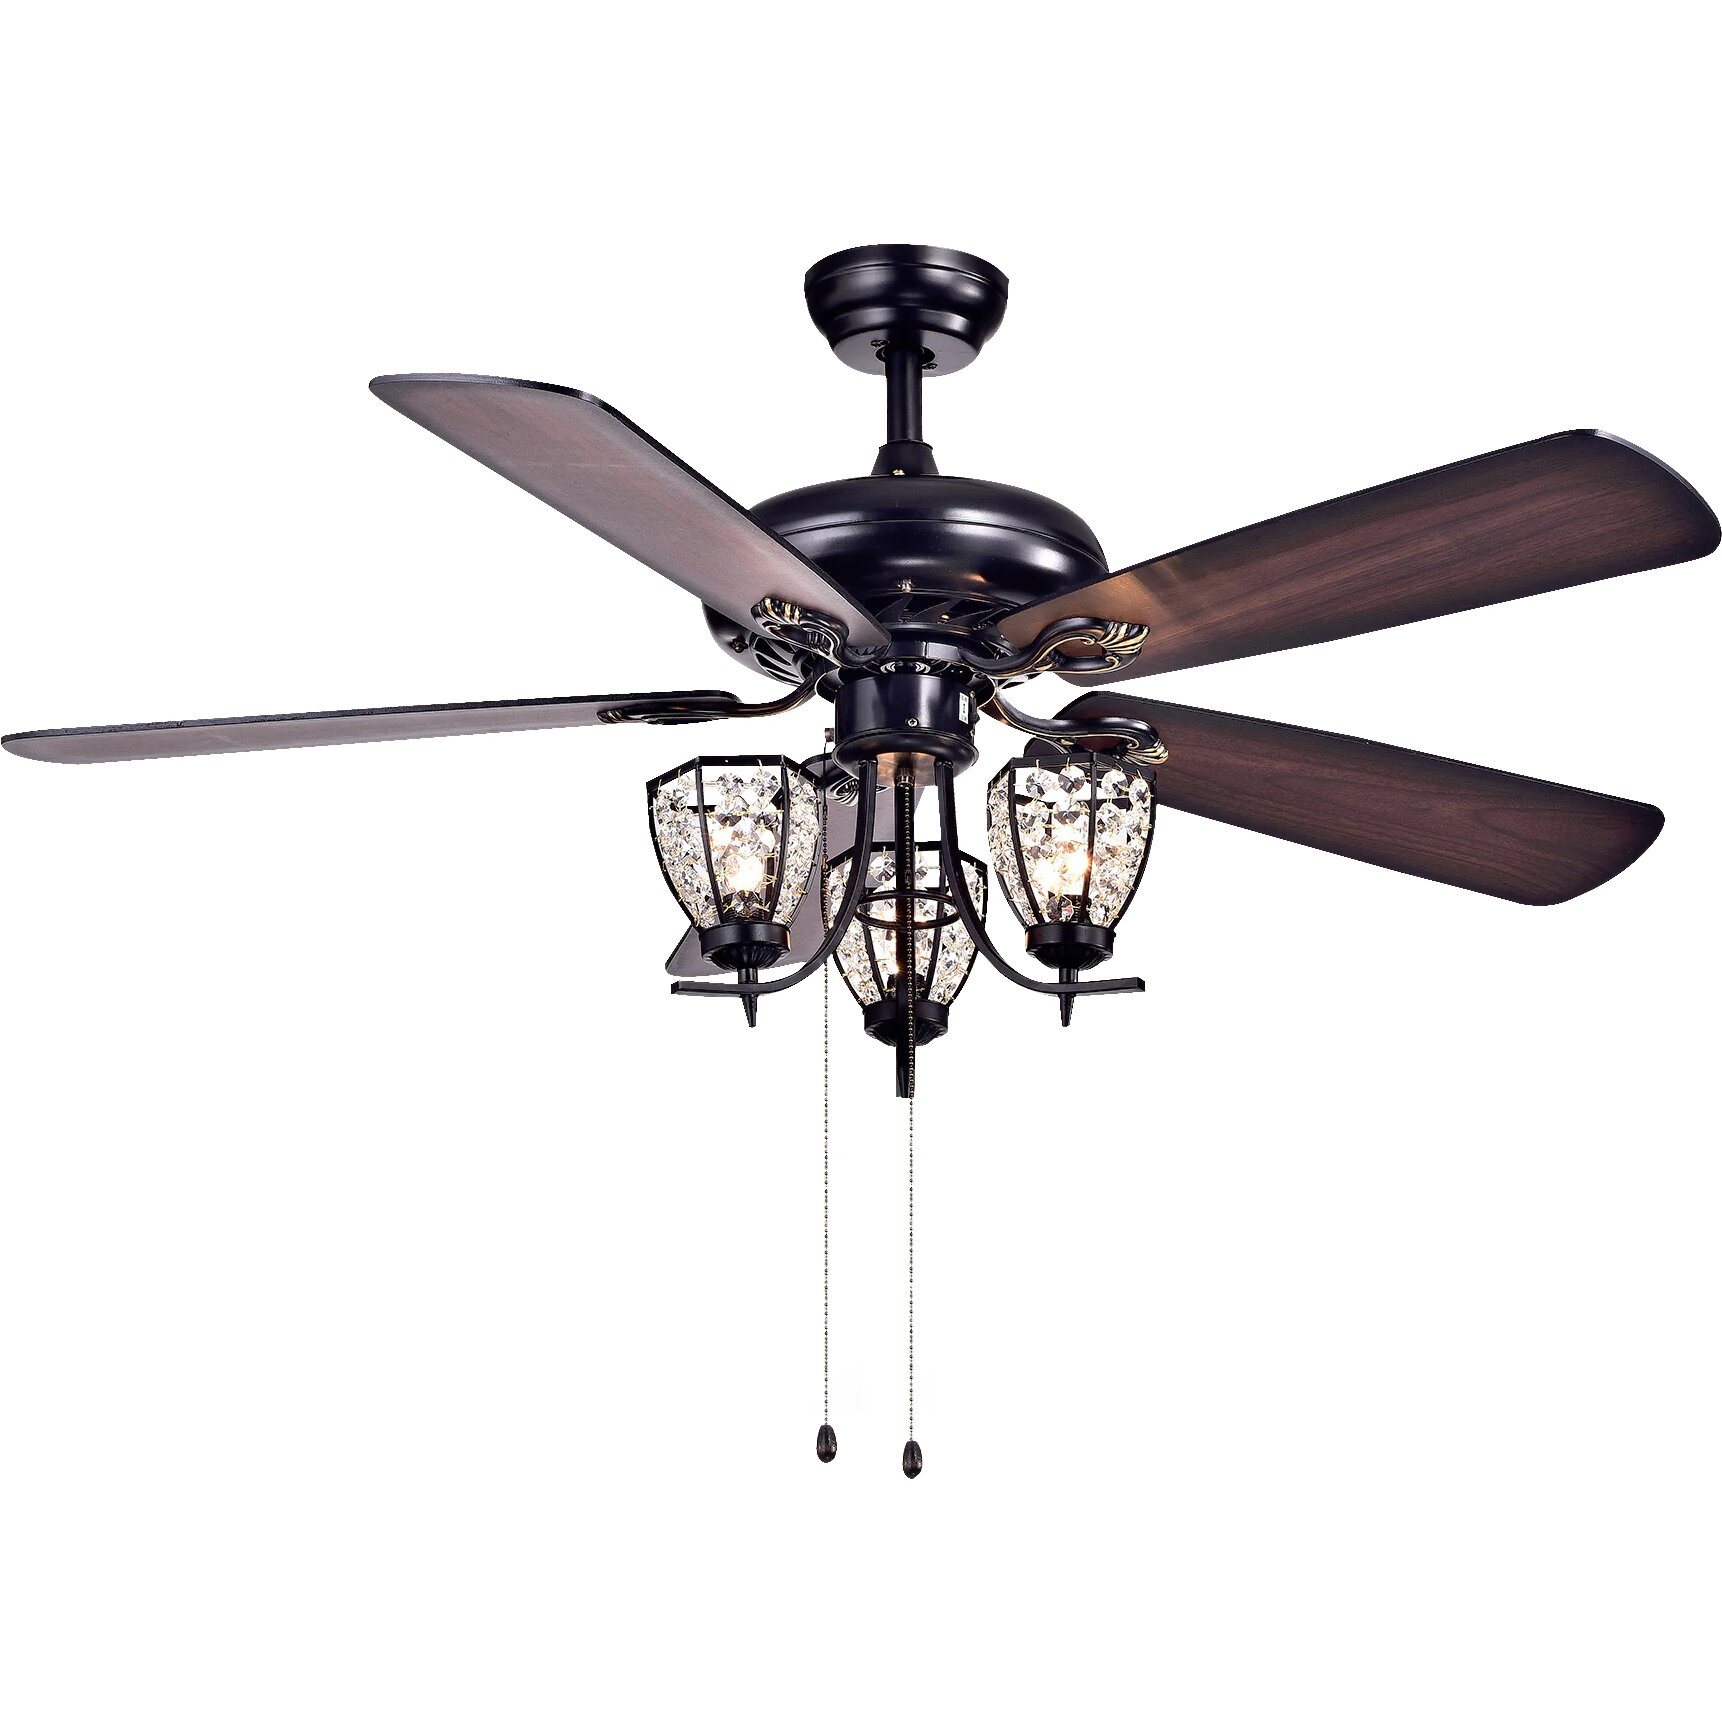 warehouse of tiffany mirabelle 3 light under cabinet branched ceiling fan light kit reviews. Black Bedroom Furniture Sets. Home Design Ideas